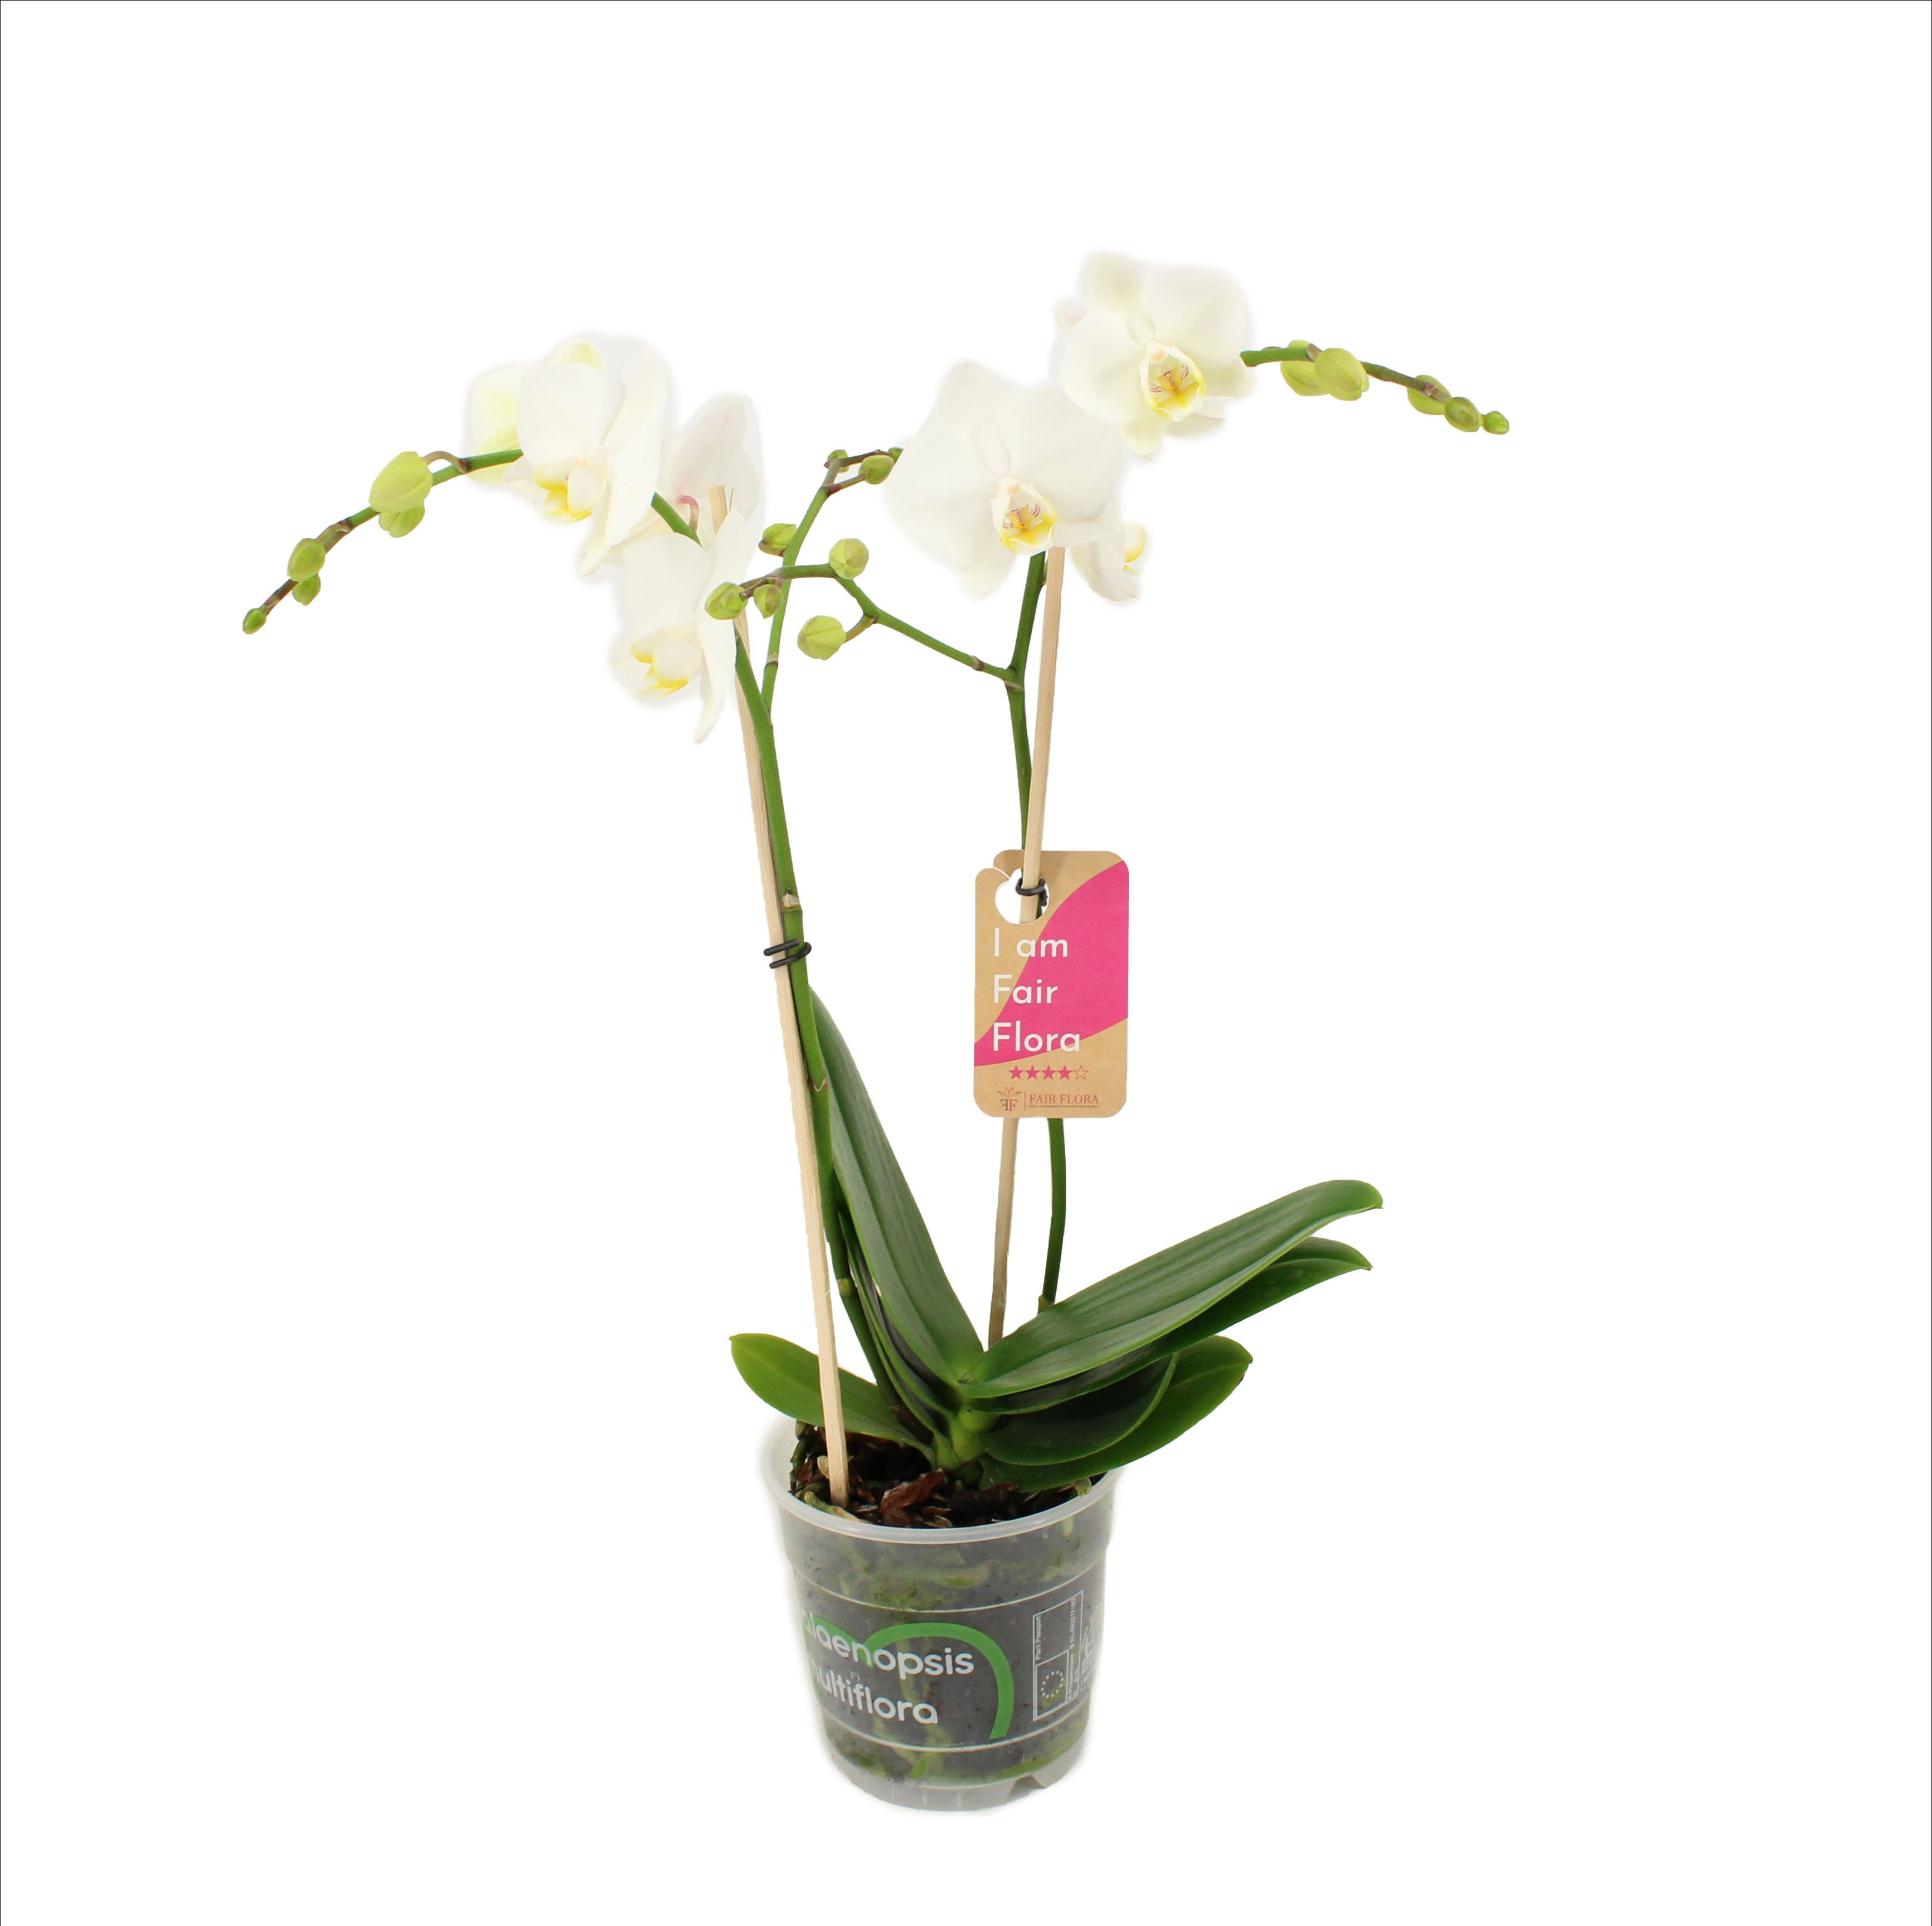 Orchidee – Orchidee – Höhe: 50 cm, 2 Triebe